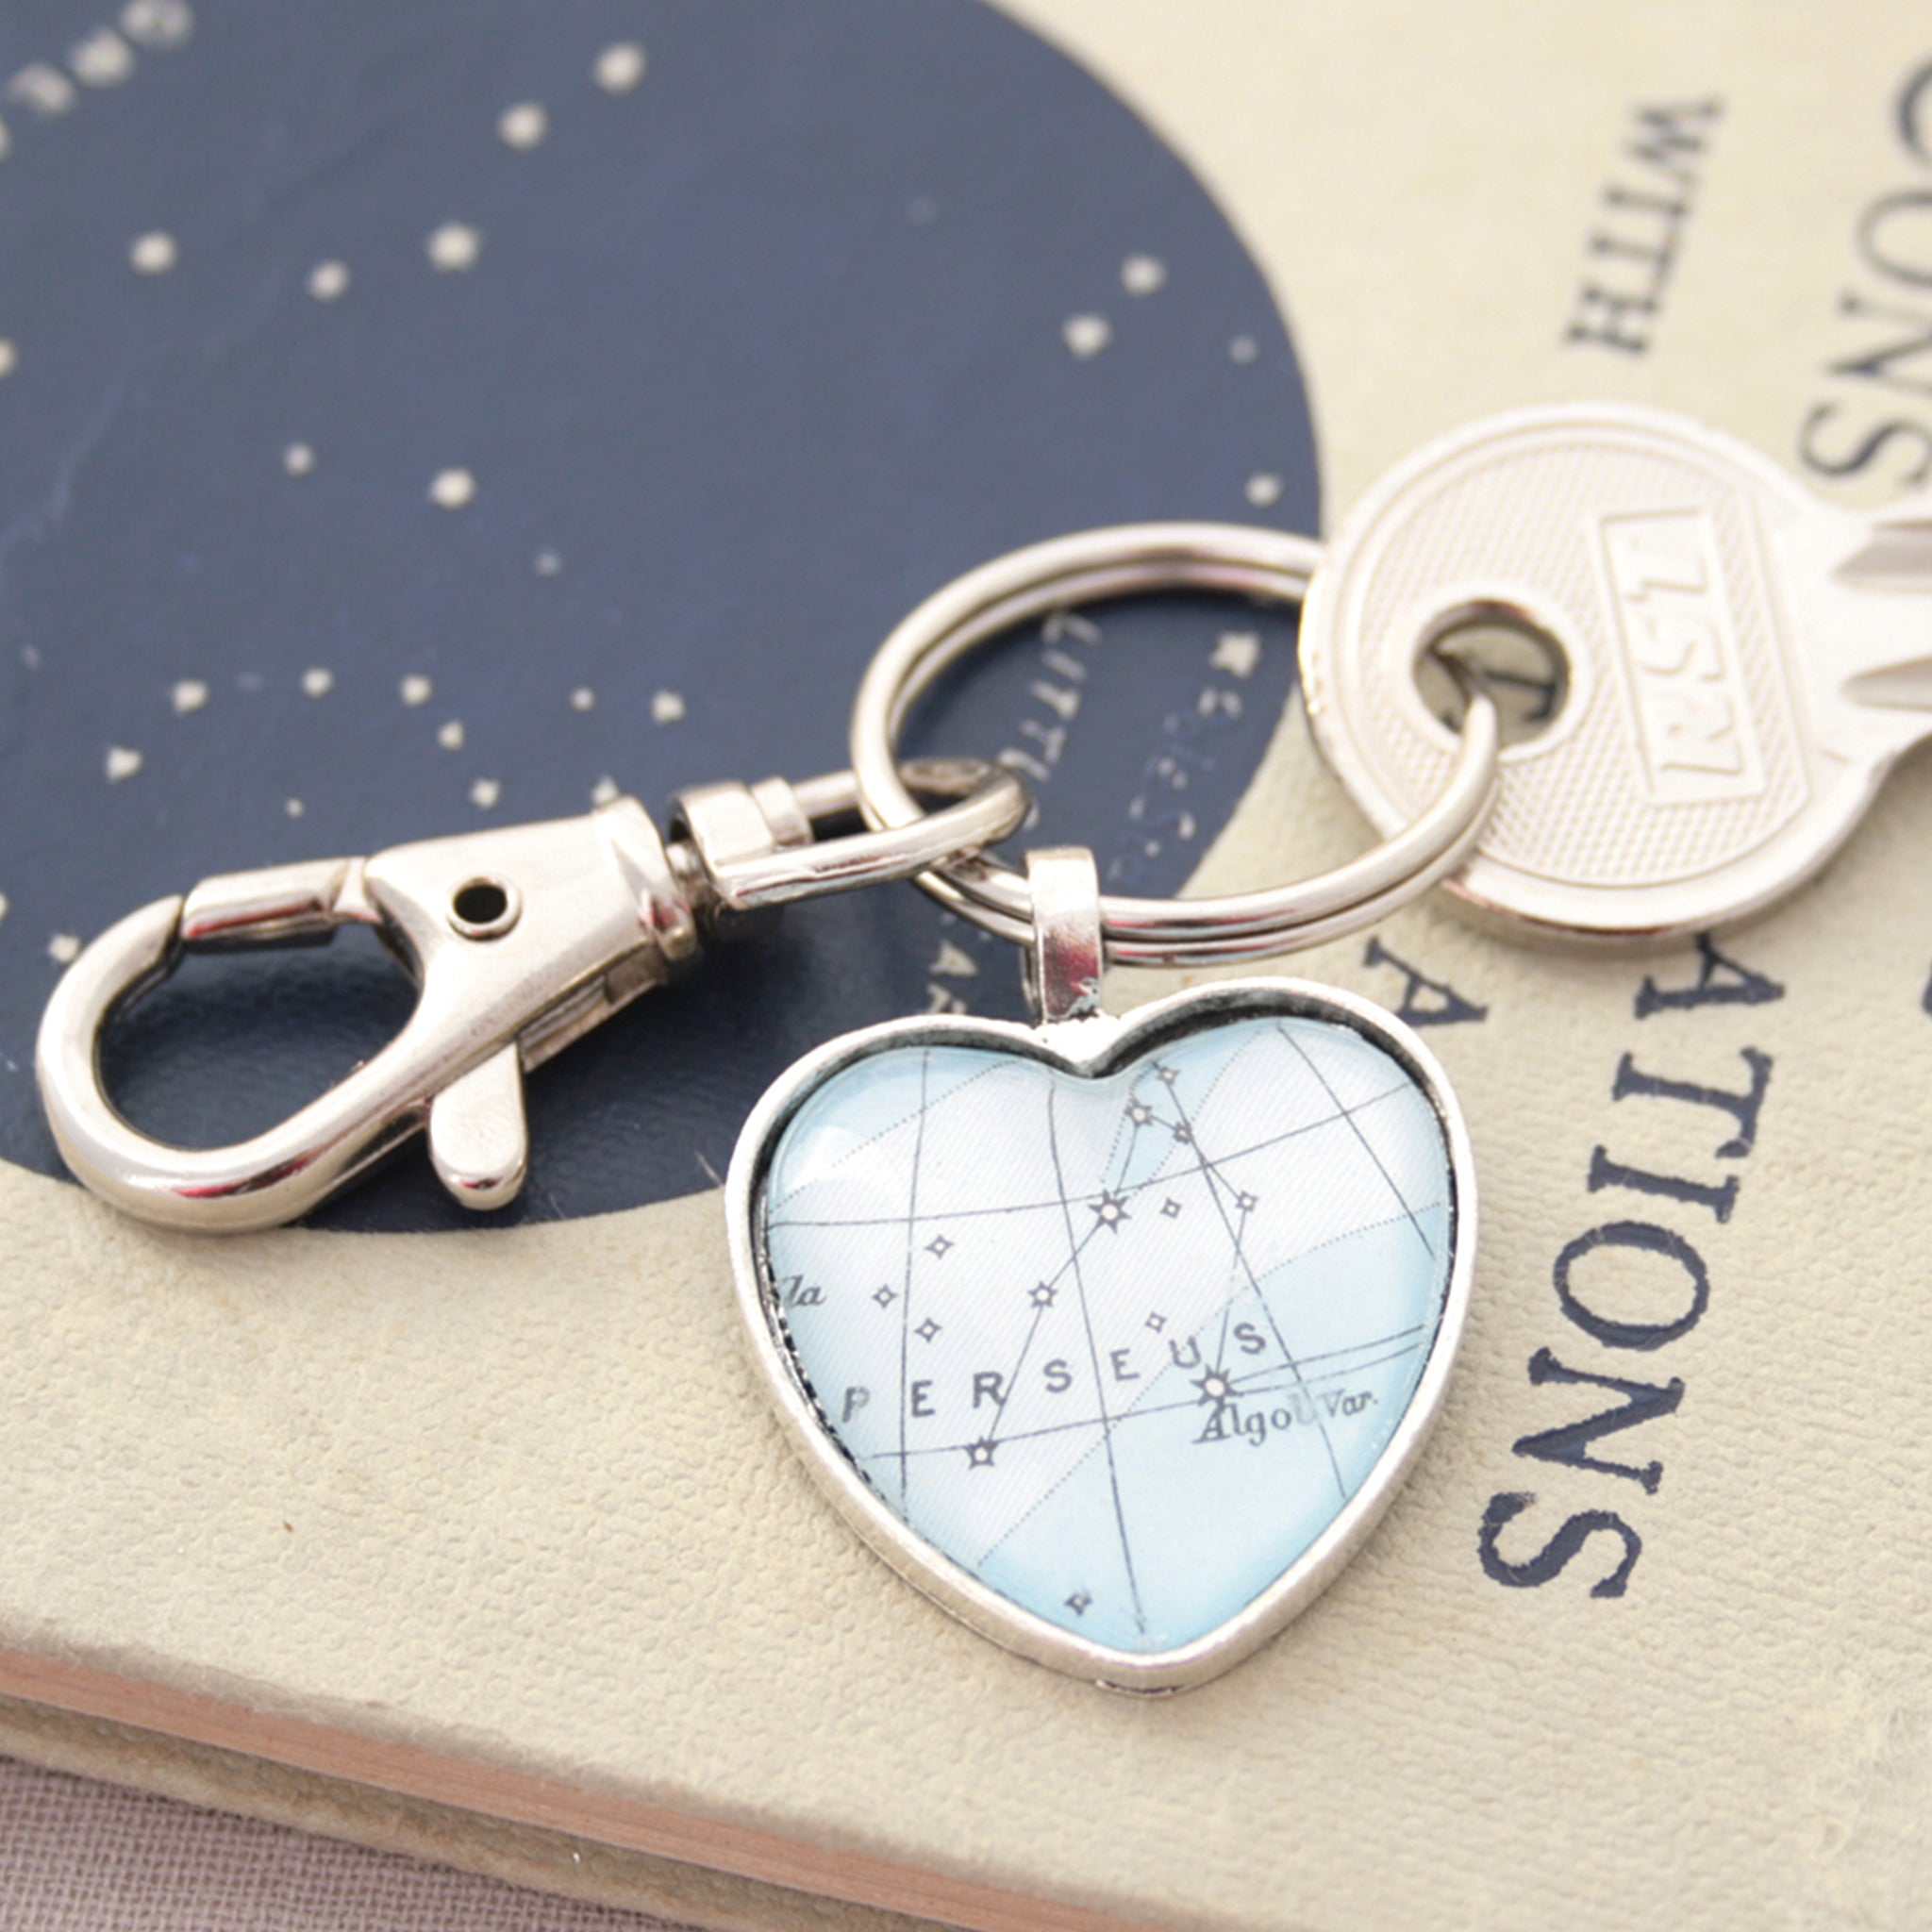 Blue Perseus zodiac keychain in heart shape